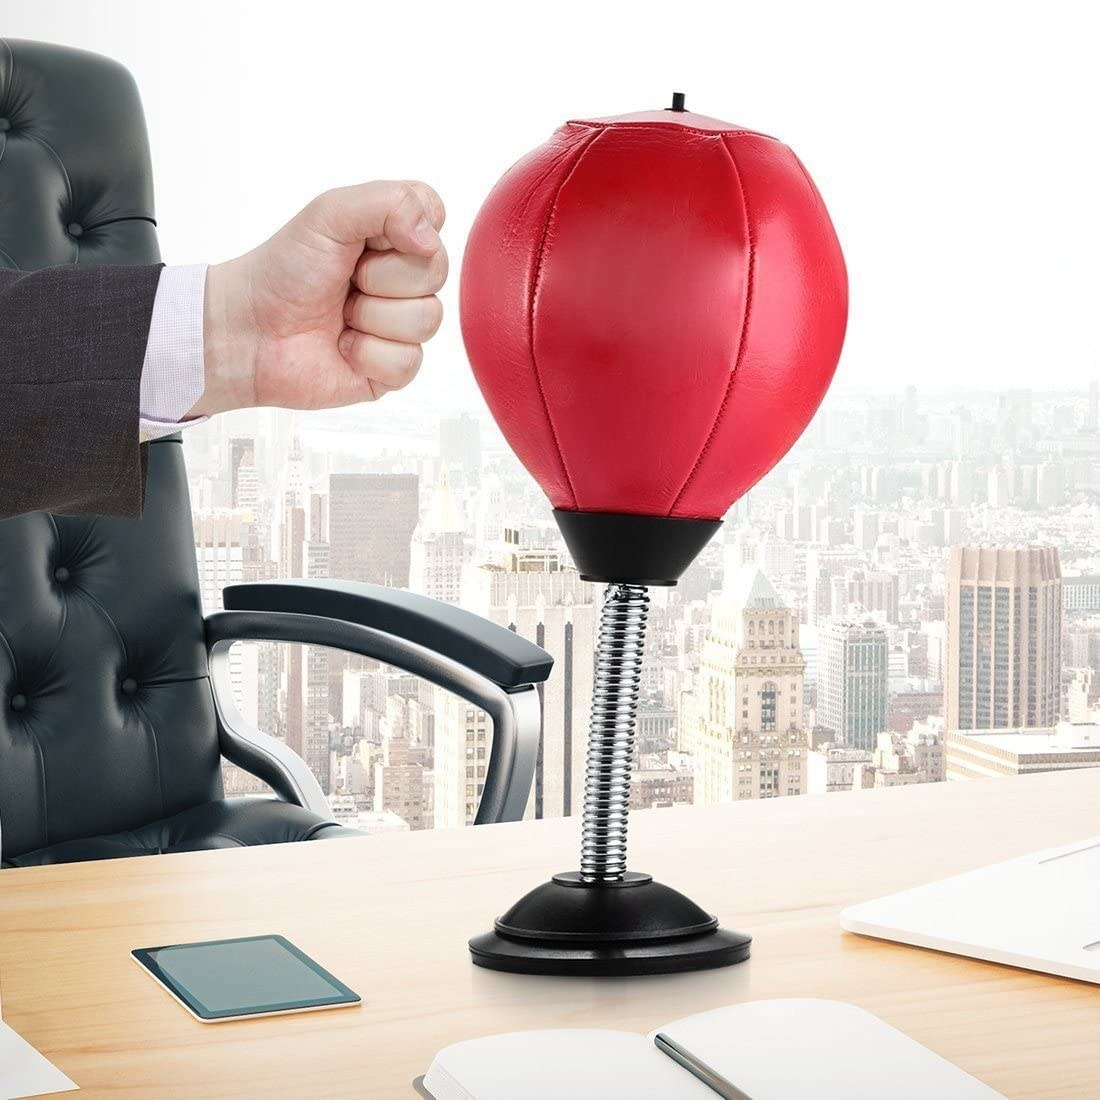 A hand punching the bag, which is attached to the top of a desk